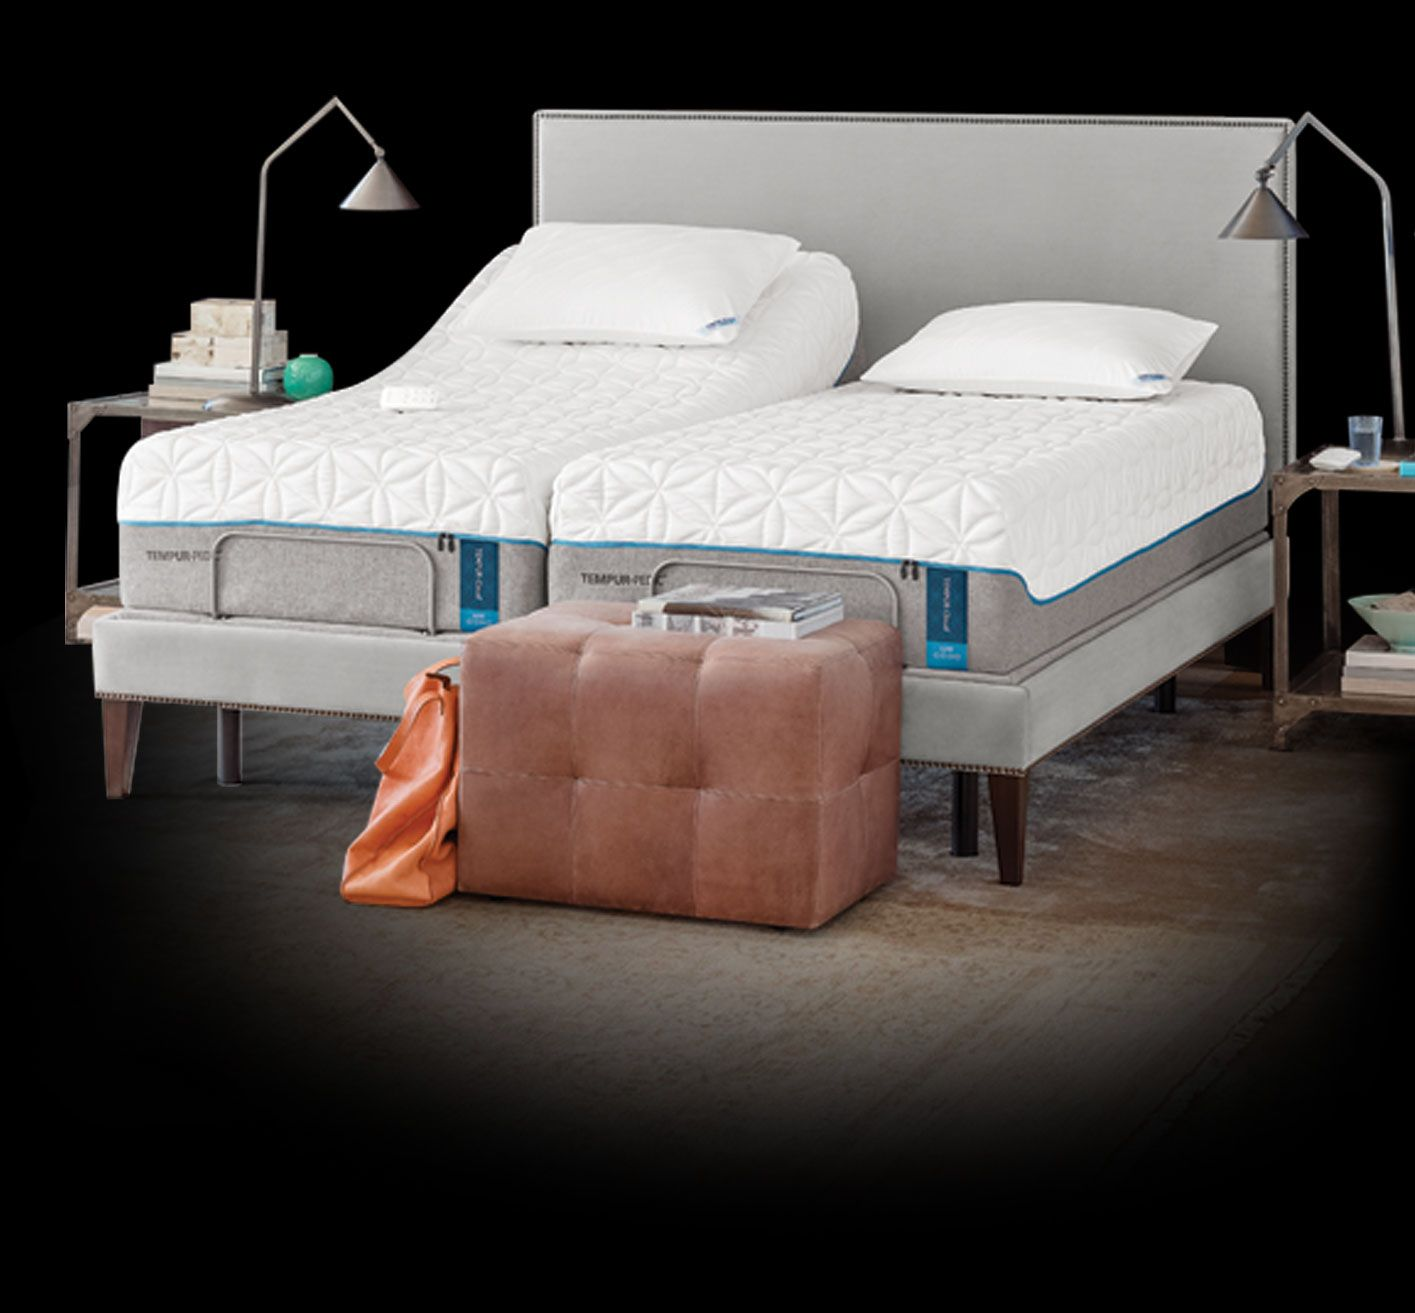 The Luxury Sleep Experience Showroom Furniture Row Offers A Wide Variety Of High End Mattresses Designed To Give You Healthiest Possible